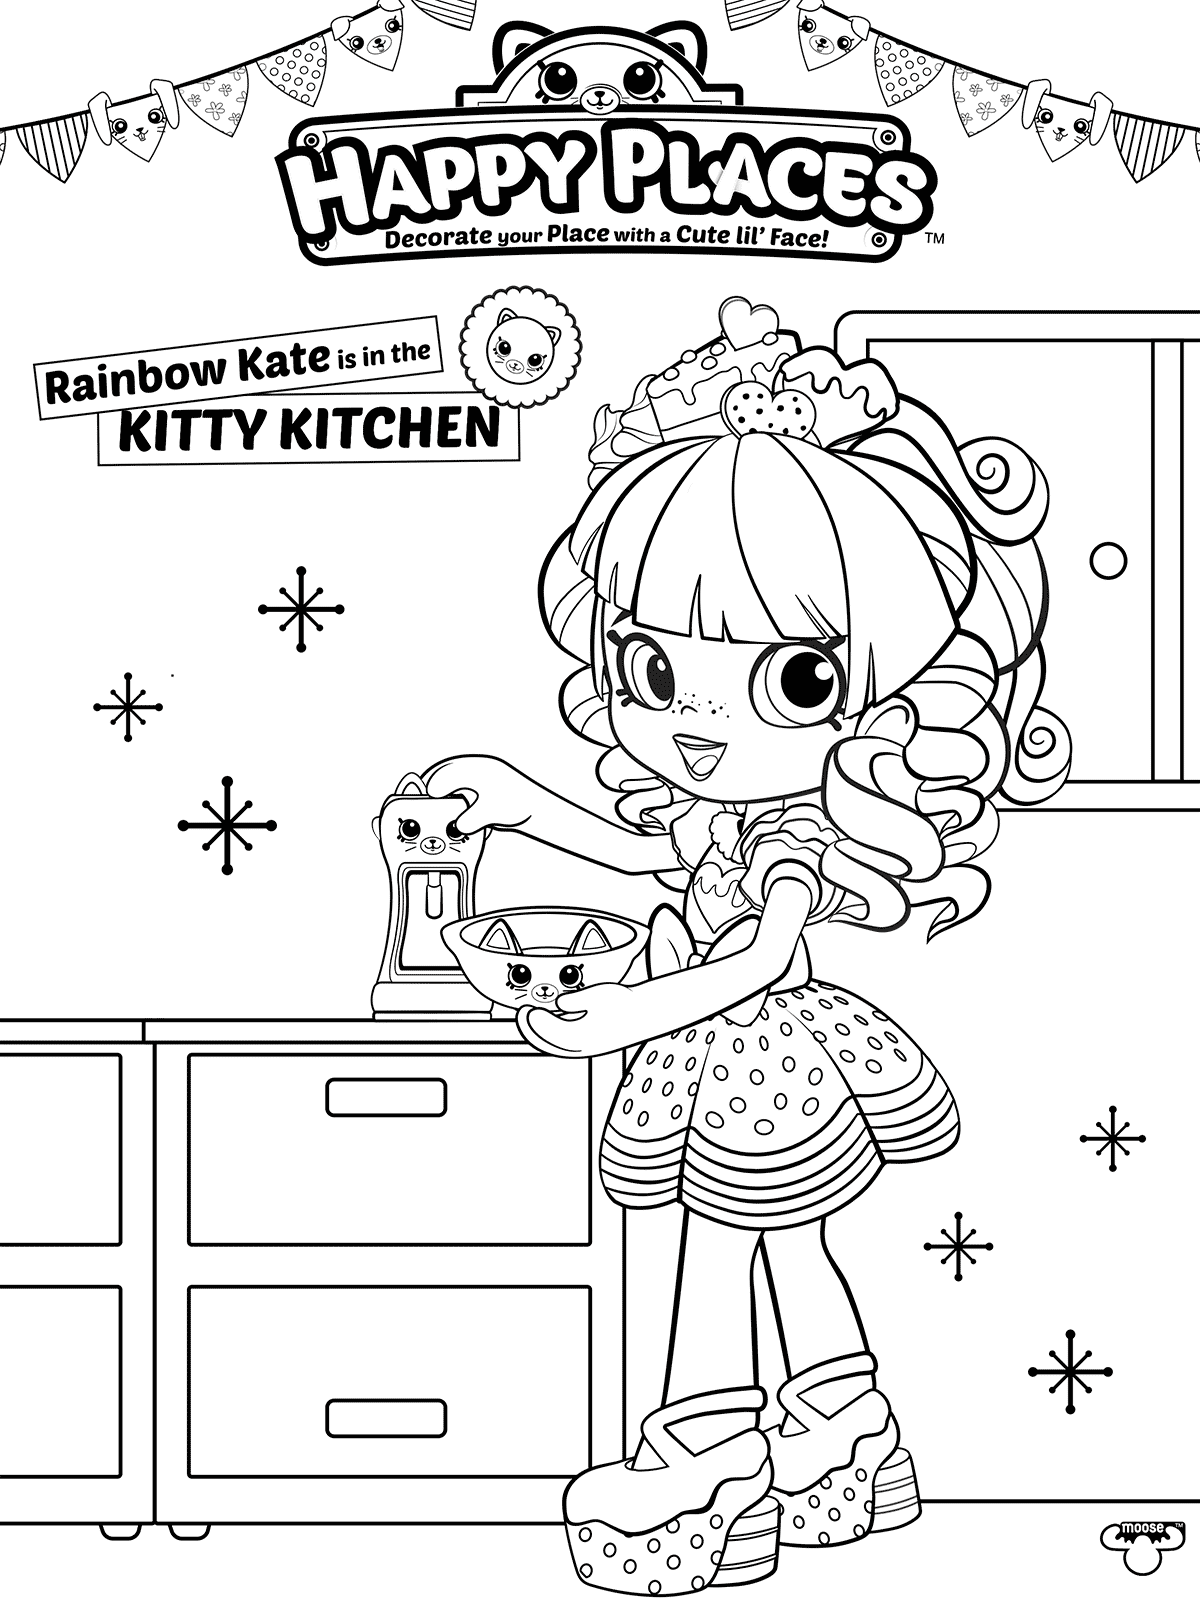 Rainbow Kate Shopkins Happy Places Coloring page